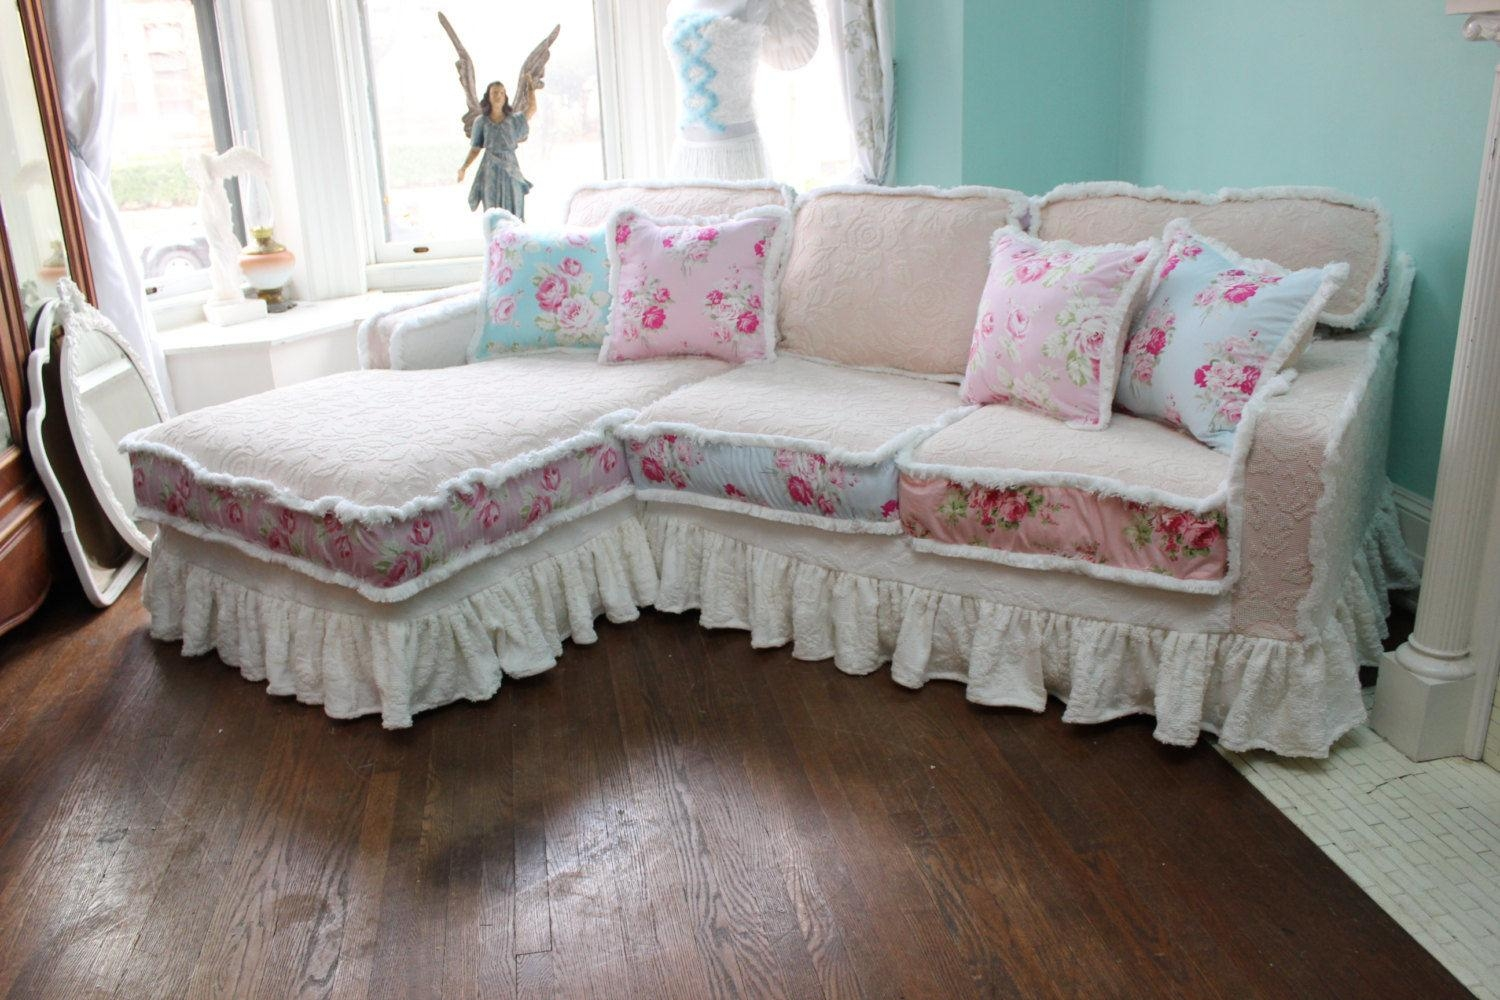 Sofas Center : 31 Marvelous Shabby Chic Sofa Picture Design Shabby Regarding Shabby Chic Sofas Cheap (View 2 of 20)